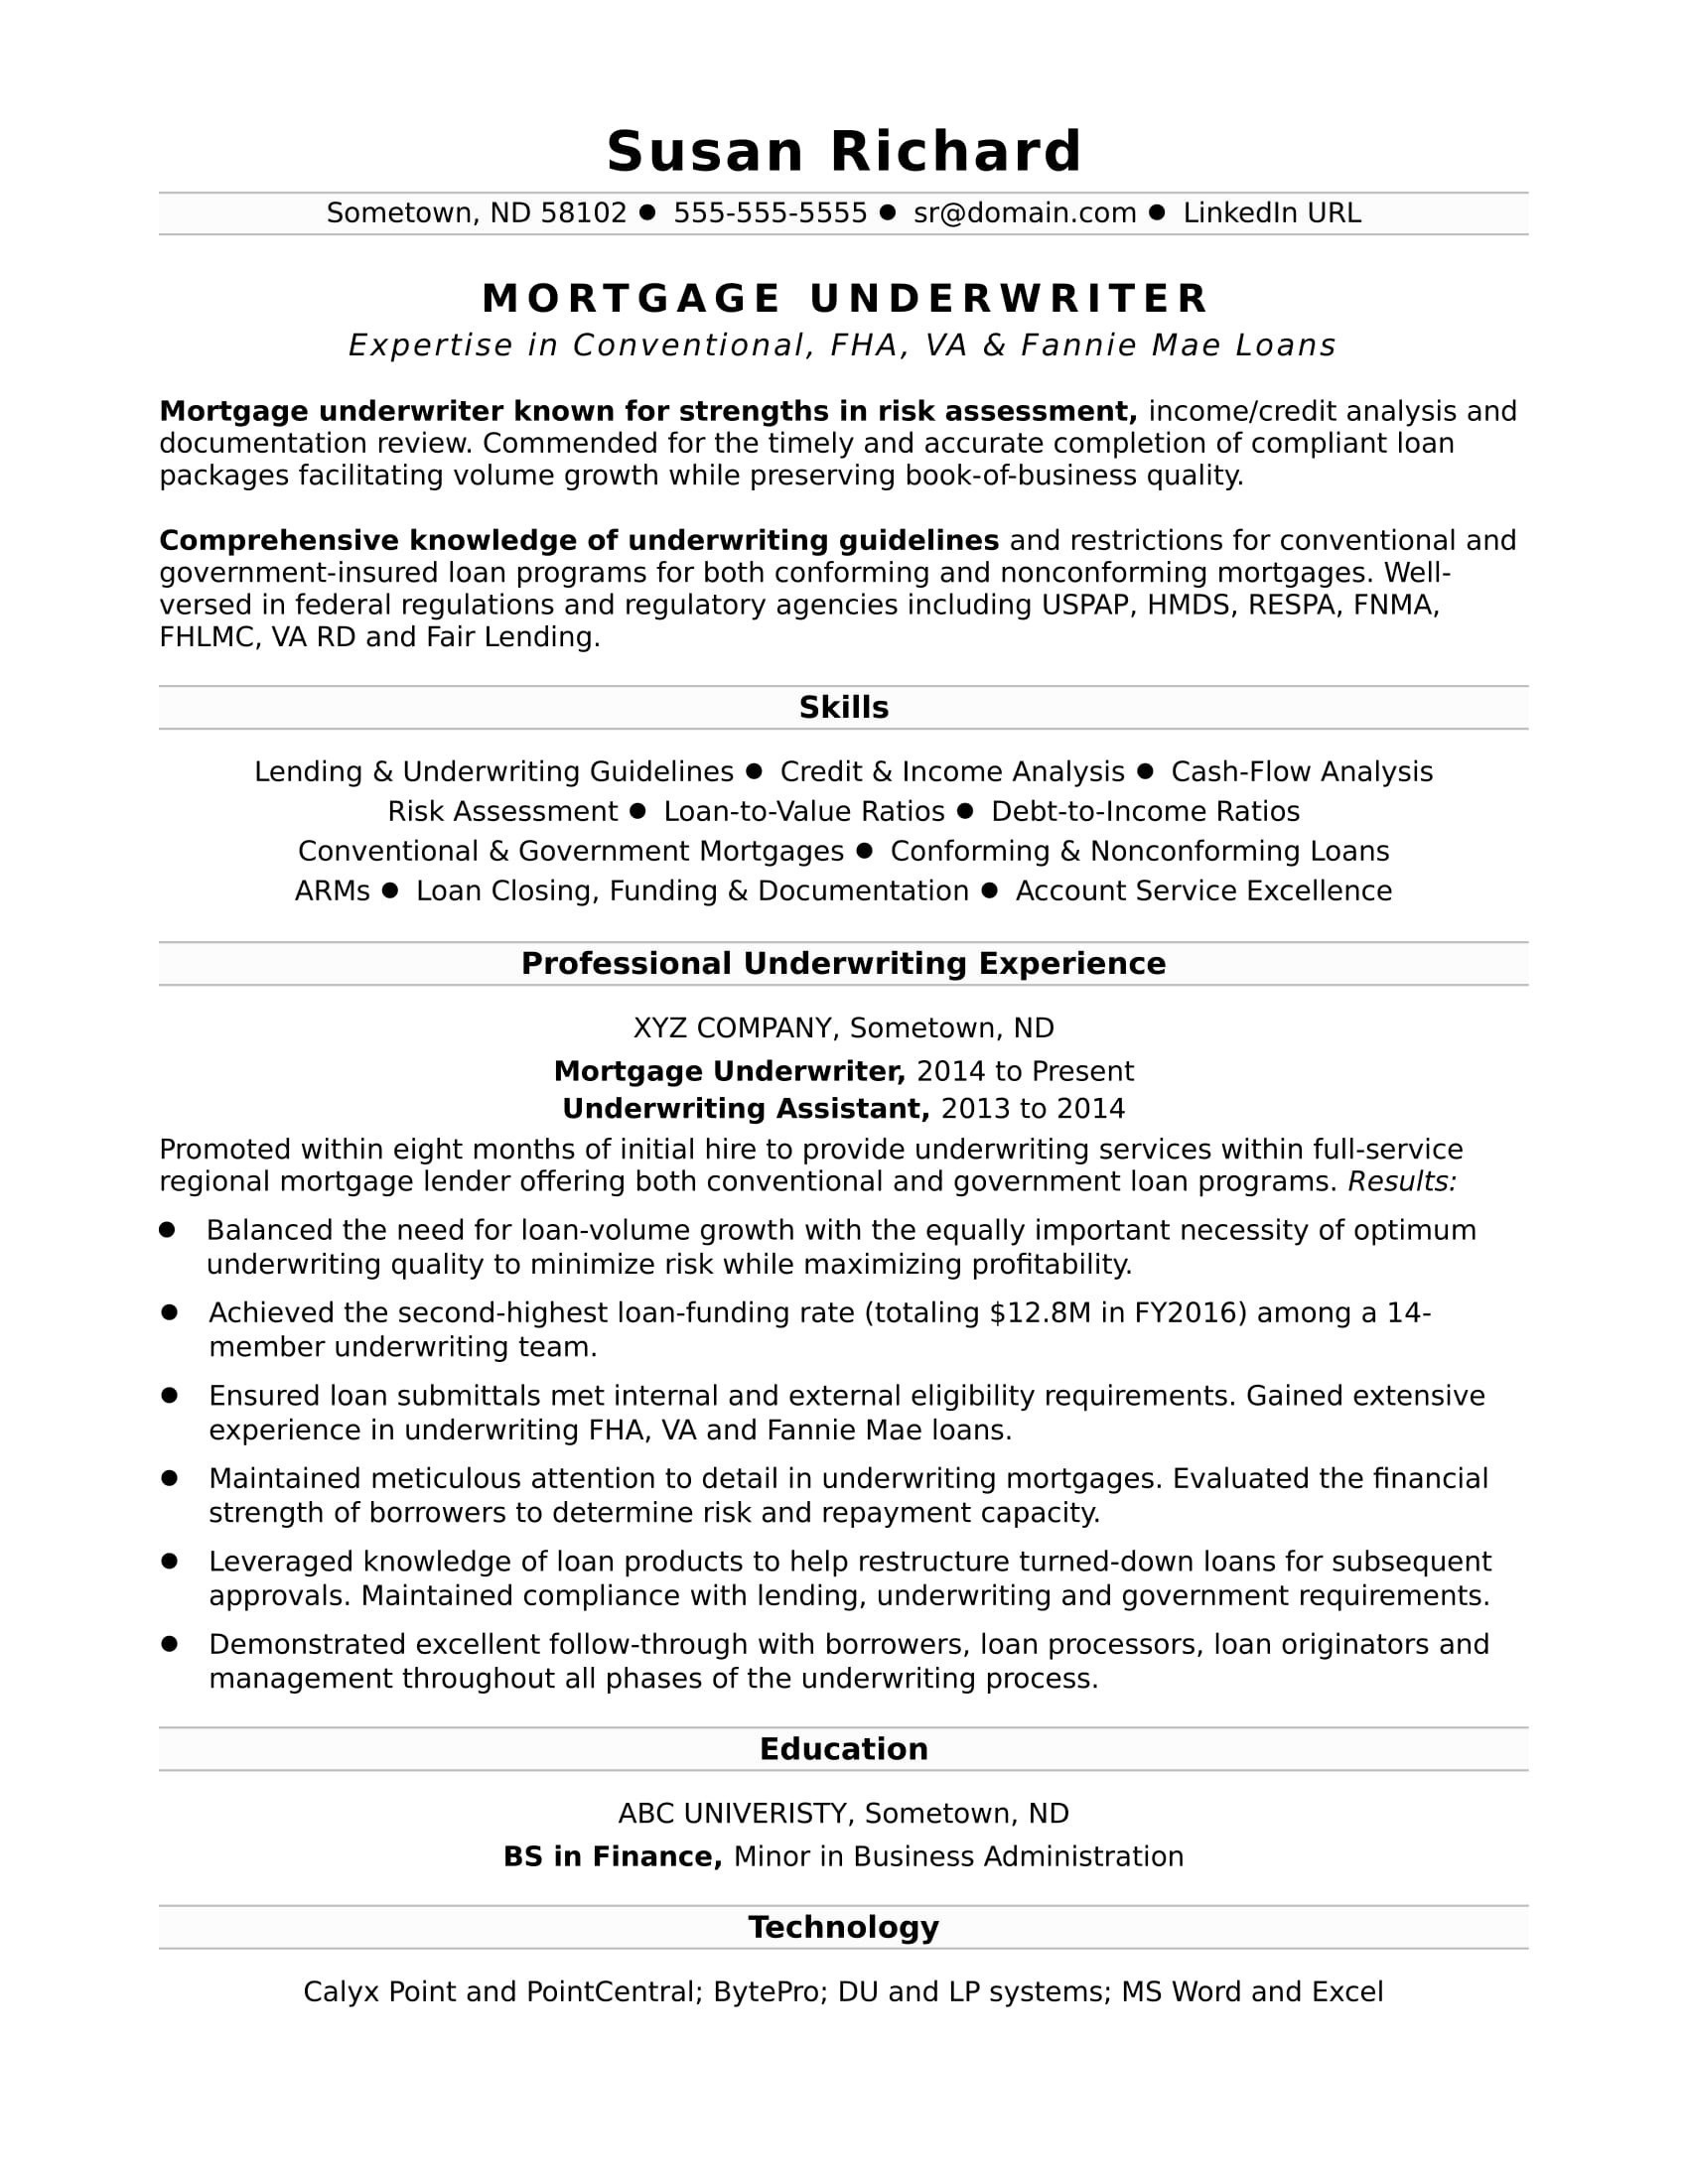 Aerospace Engineer Resume - Aerospace Engineer Resume